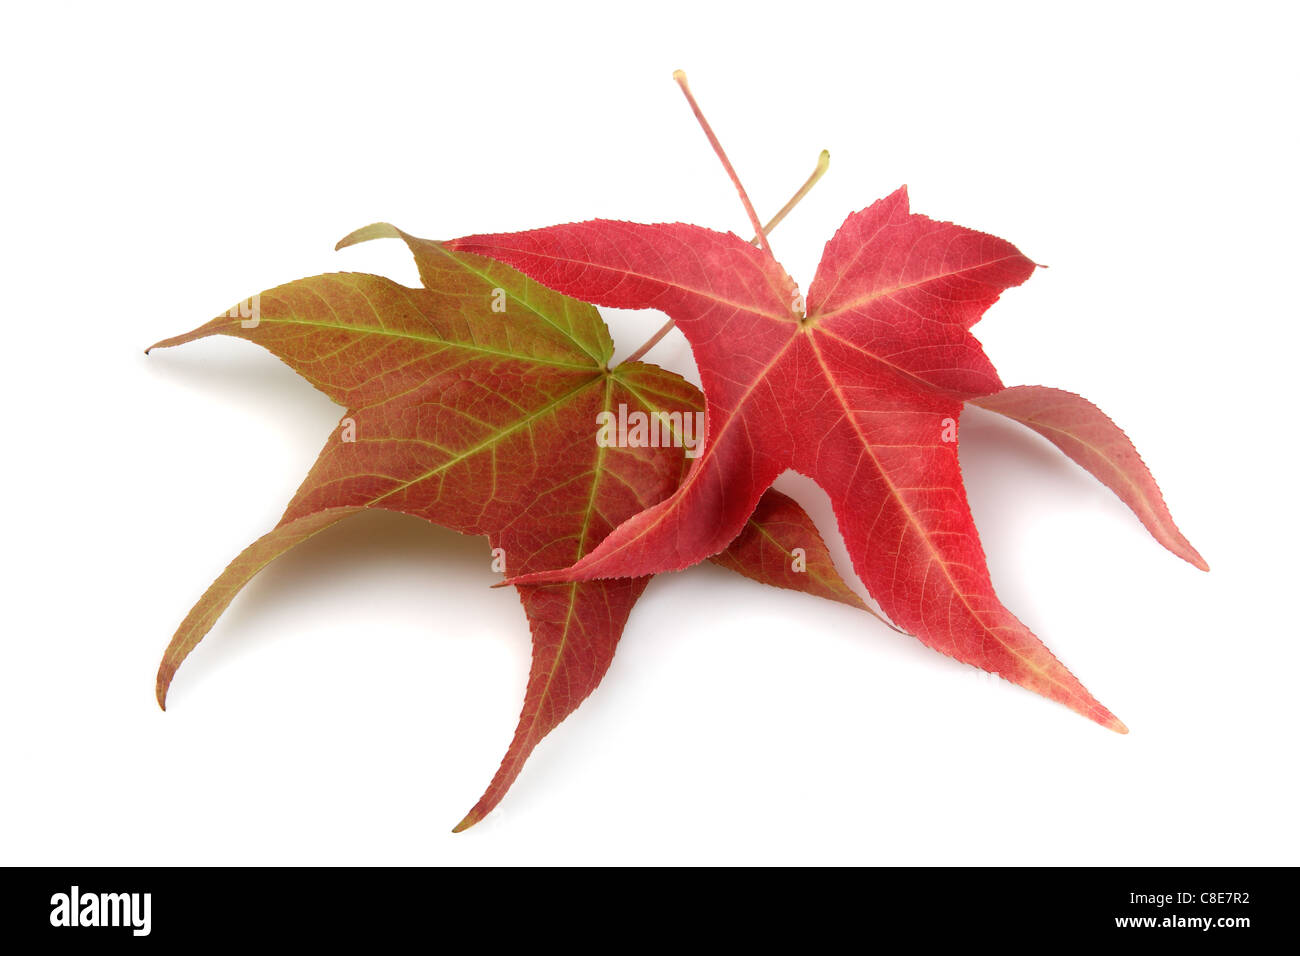 Fall maple leaves on white background - Stock Image